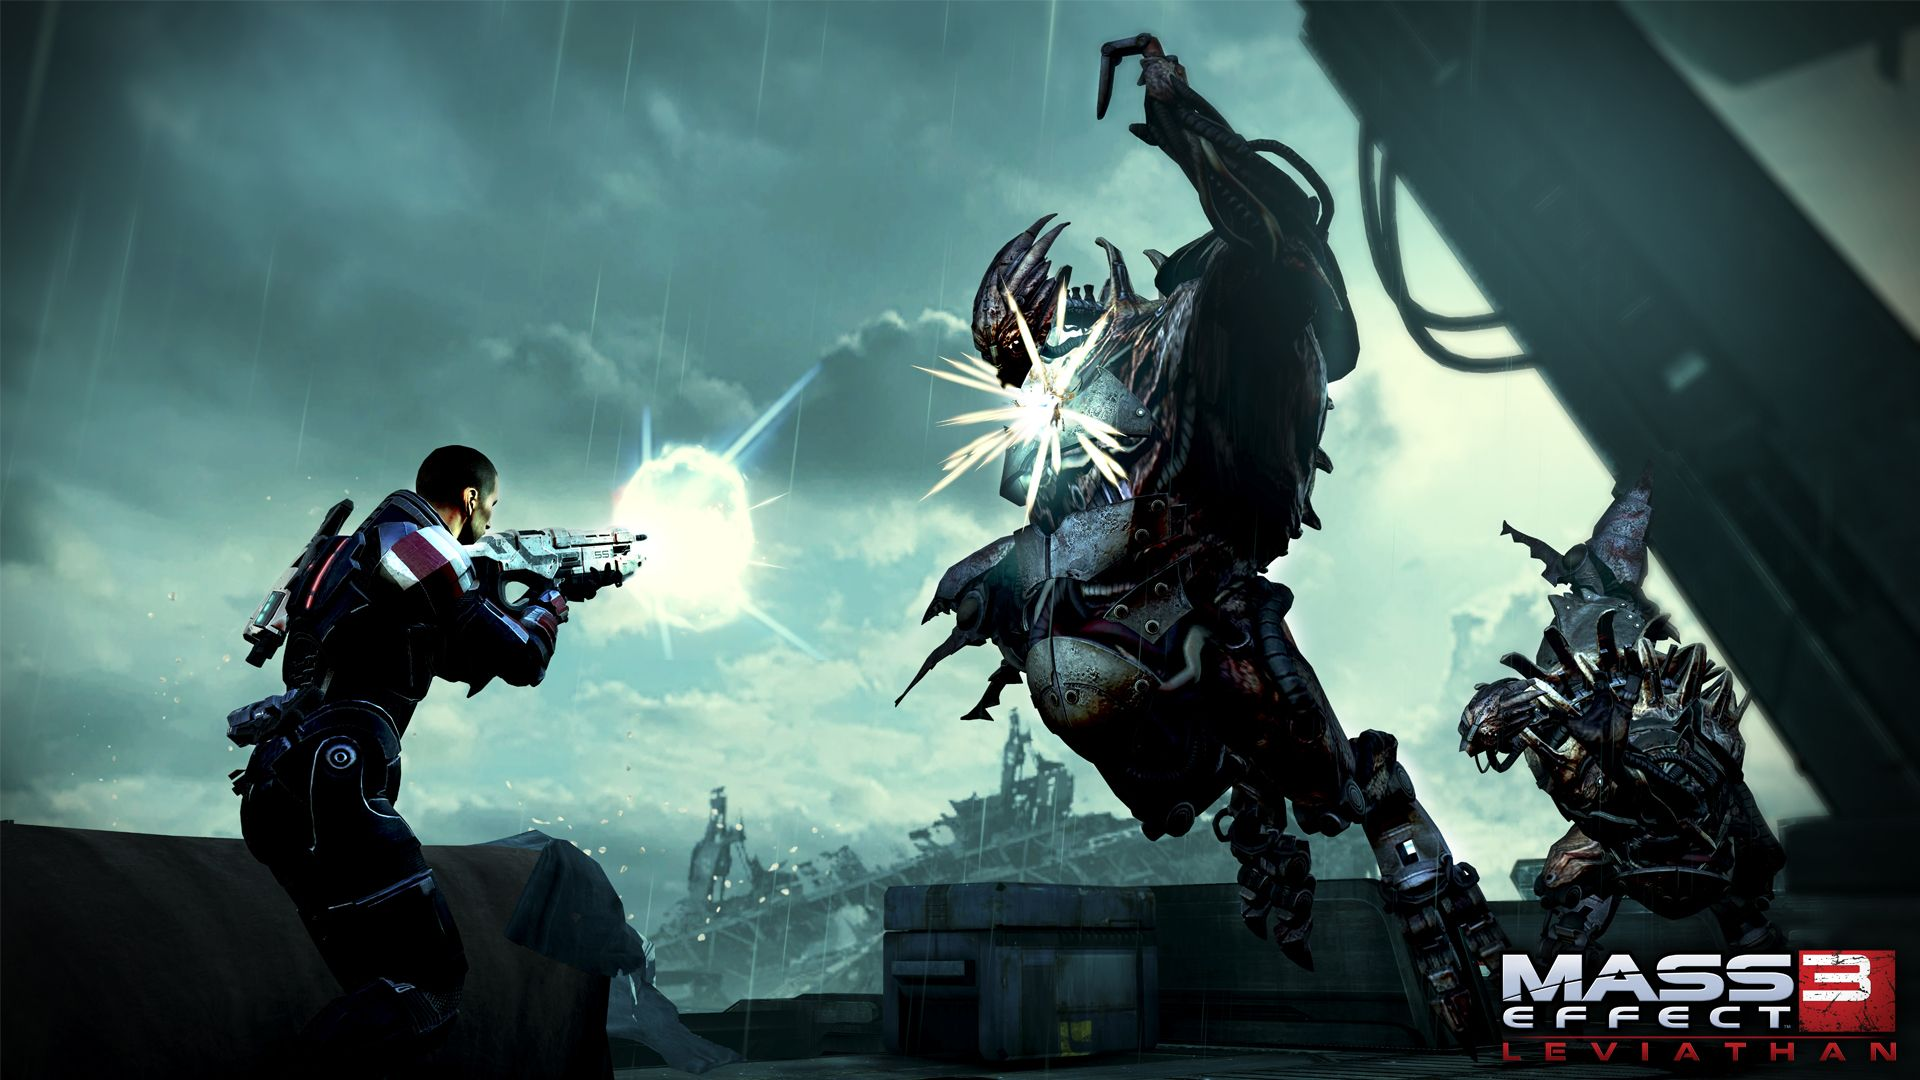 Launch Day Screen Shot From Mass Effect 3 Leviathan With Images